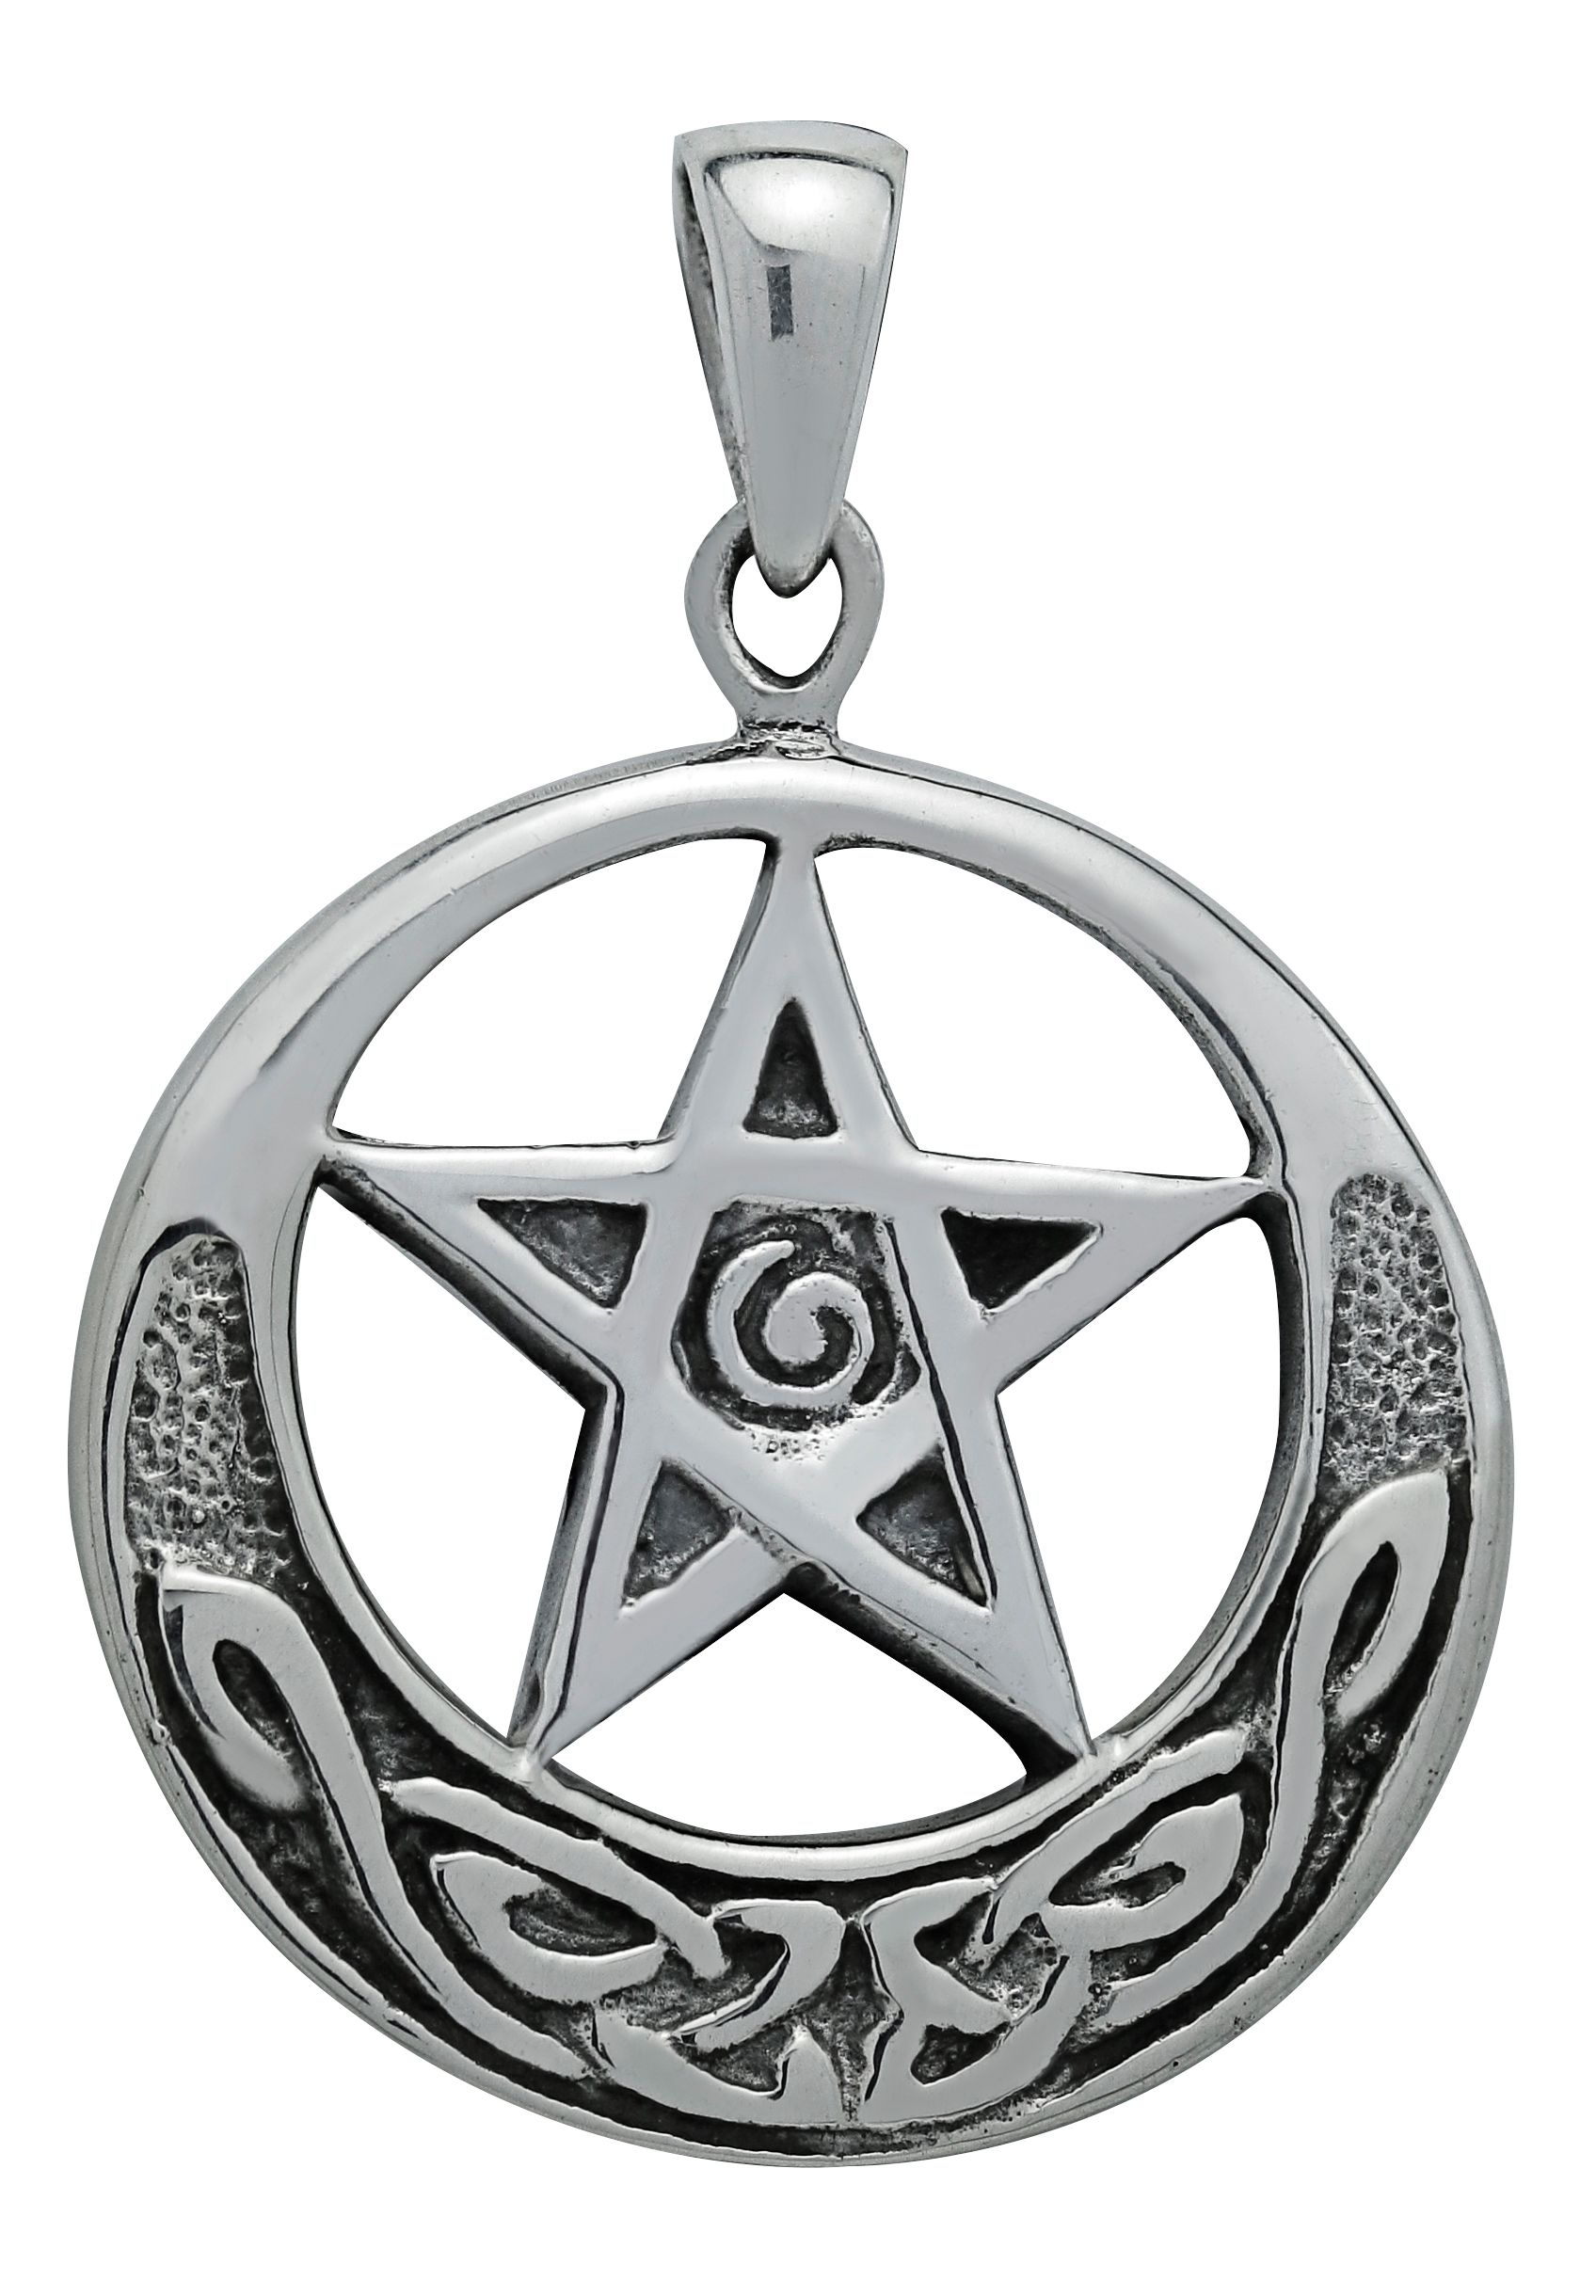 by pendant art hecate on deviantart hydramstar s yule wheel